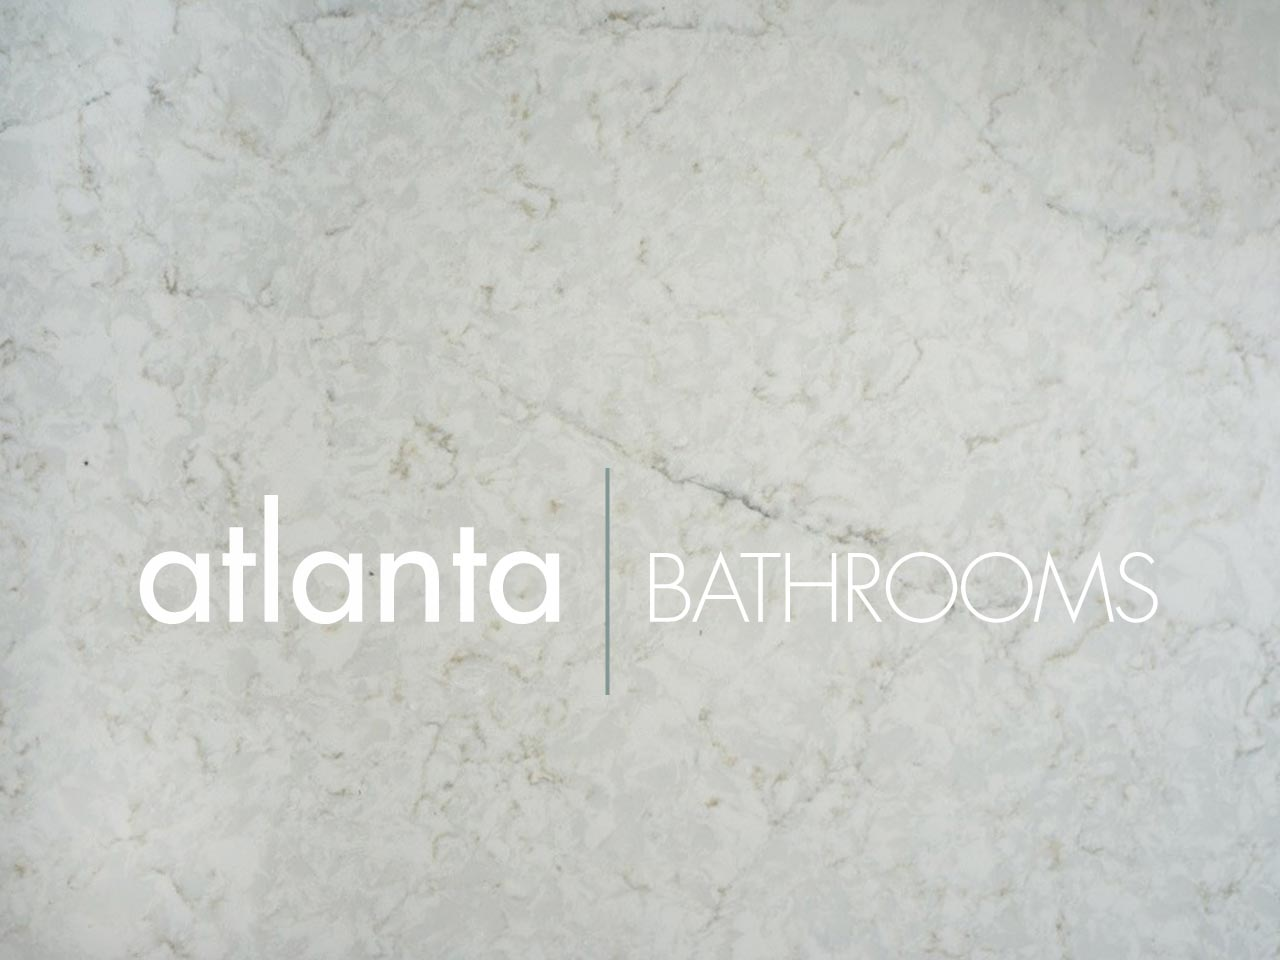 atlanta bathrooms logo